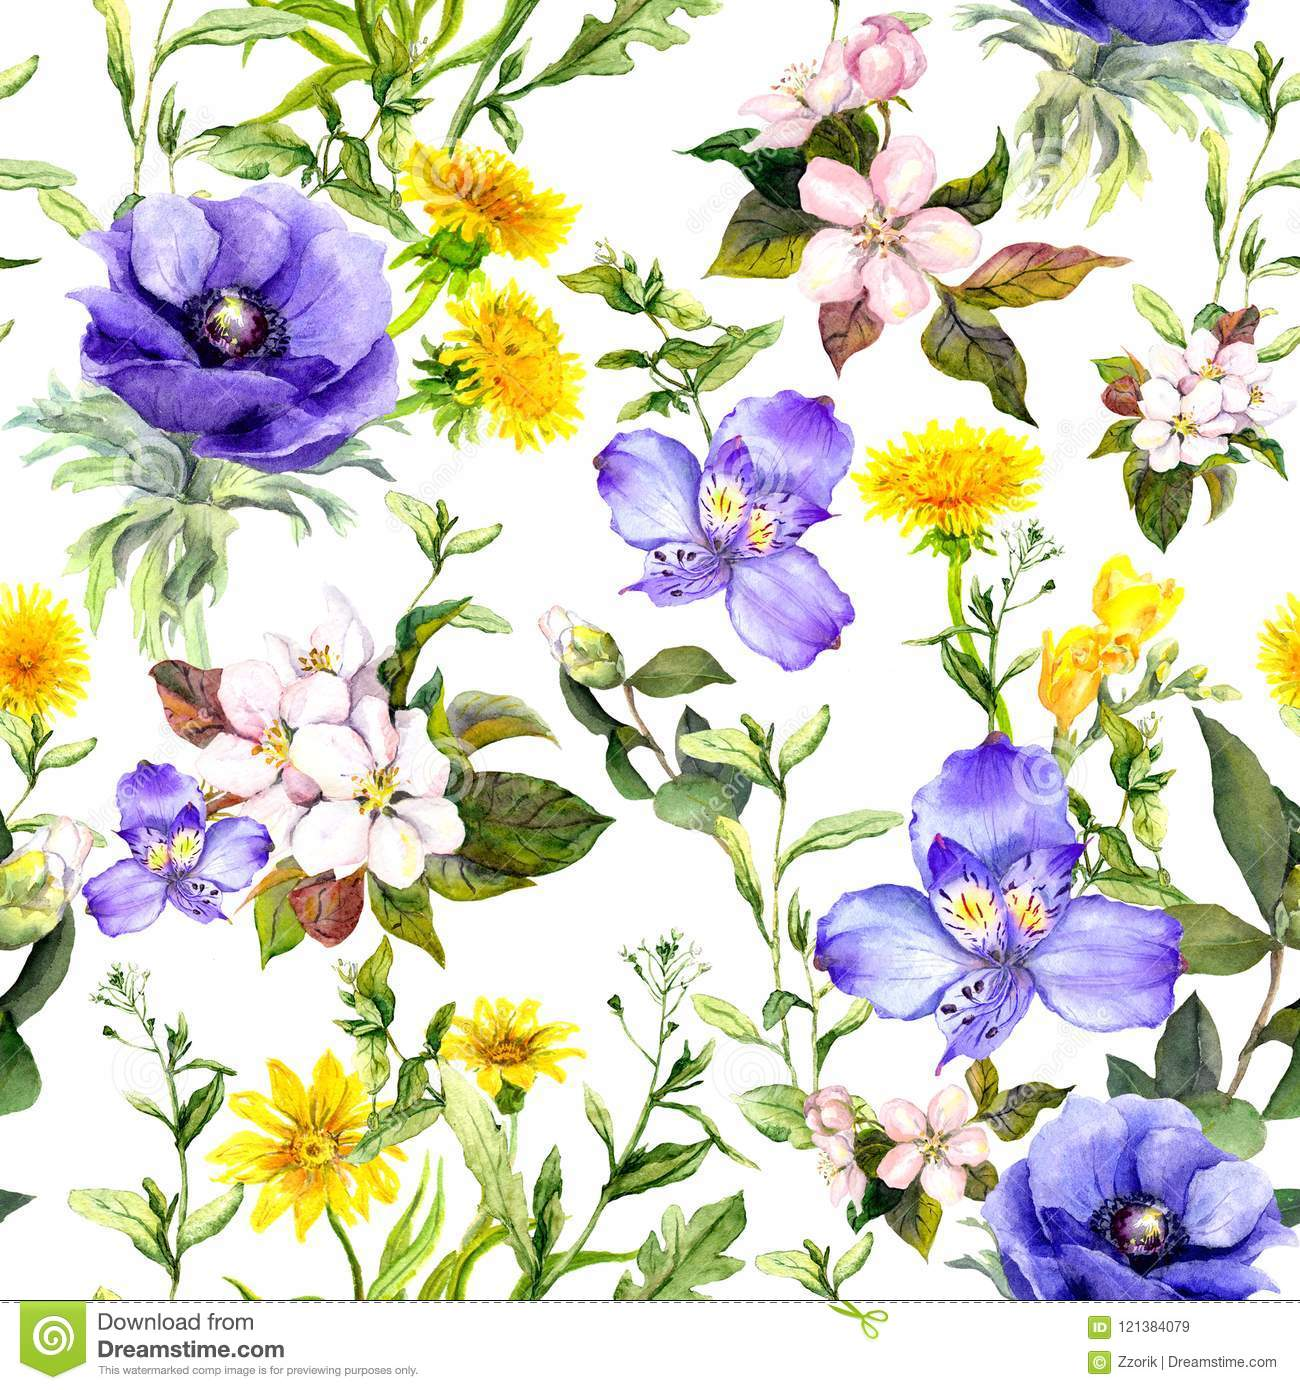 Summer Flowers Meadow Grasses Spring Herbs Seamless Natural